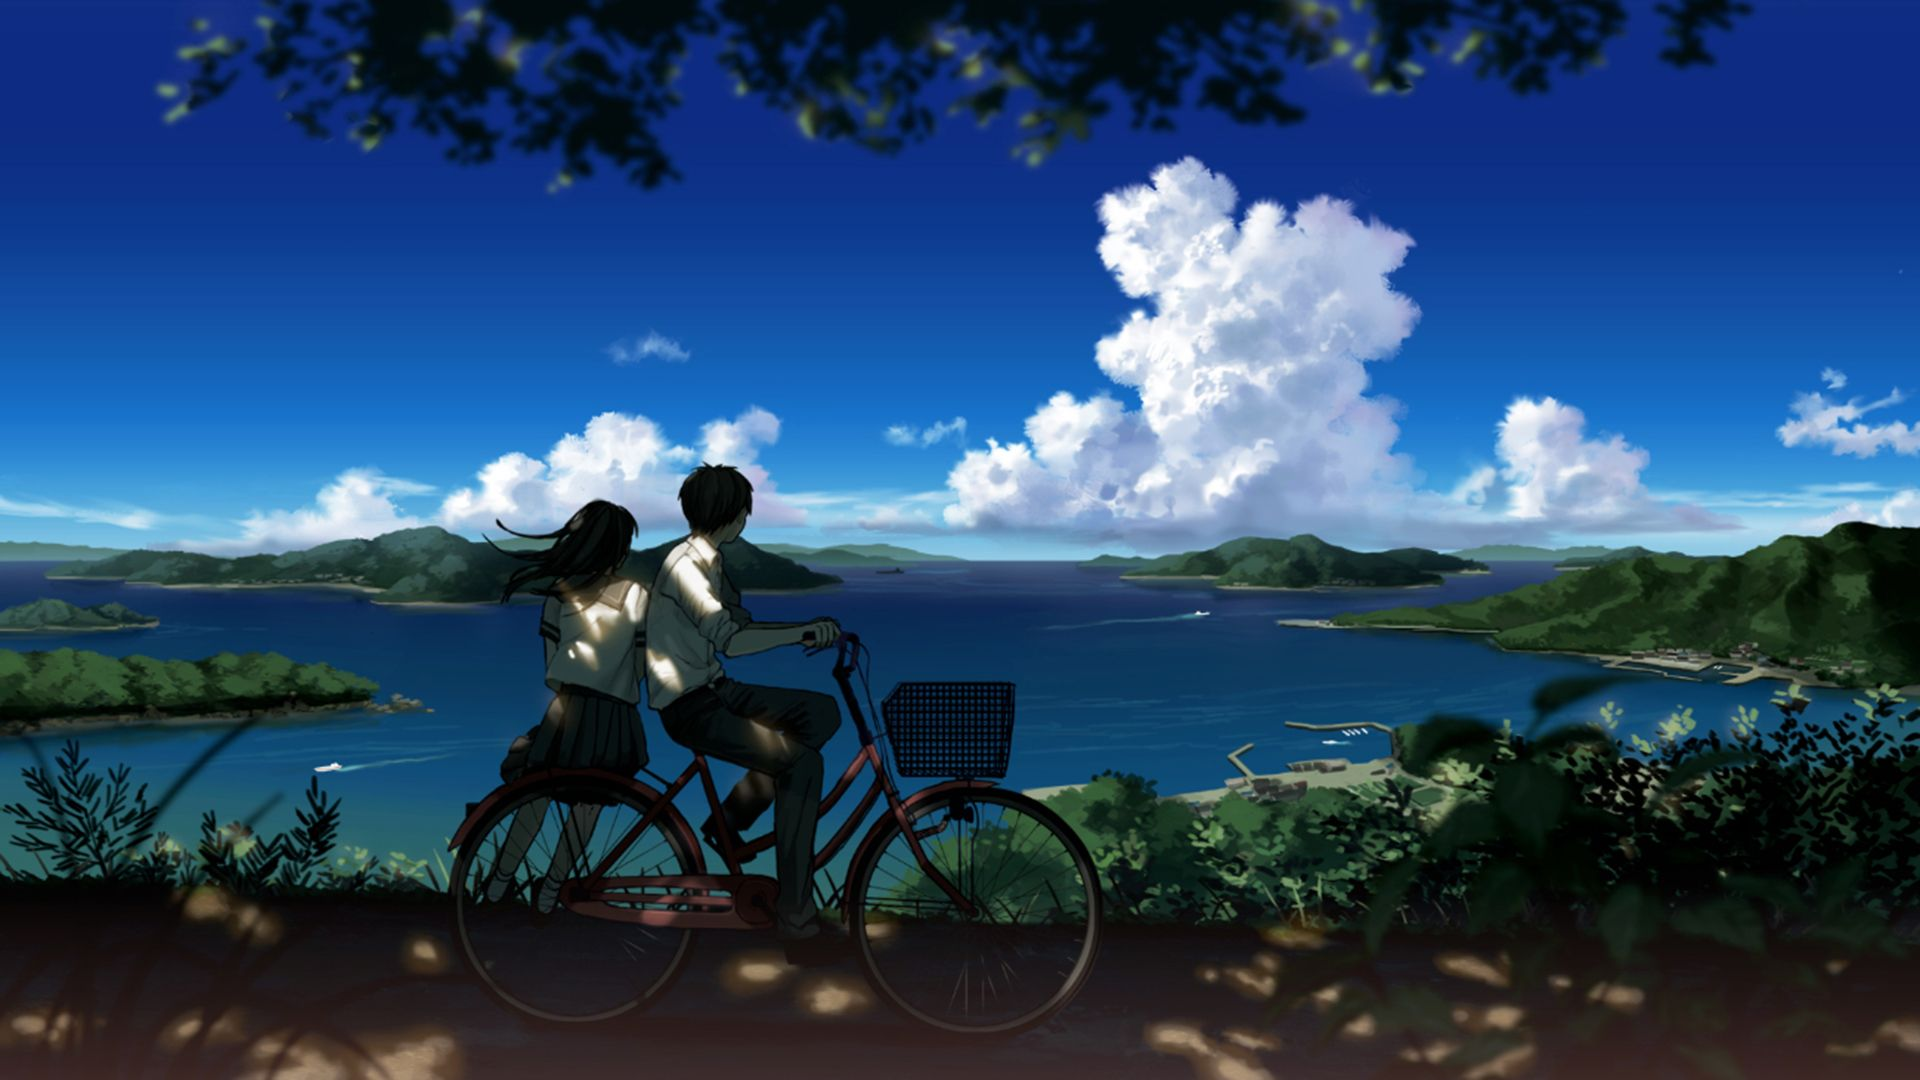 Boy And Girl Looking At Beautiful Landscape Hd Wallpaper 1920x1080 Id 44557 Anime Scenery Anime Art Beautiful Beautiful Landscape Wallpaper